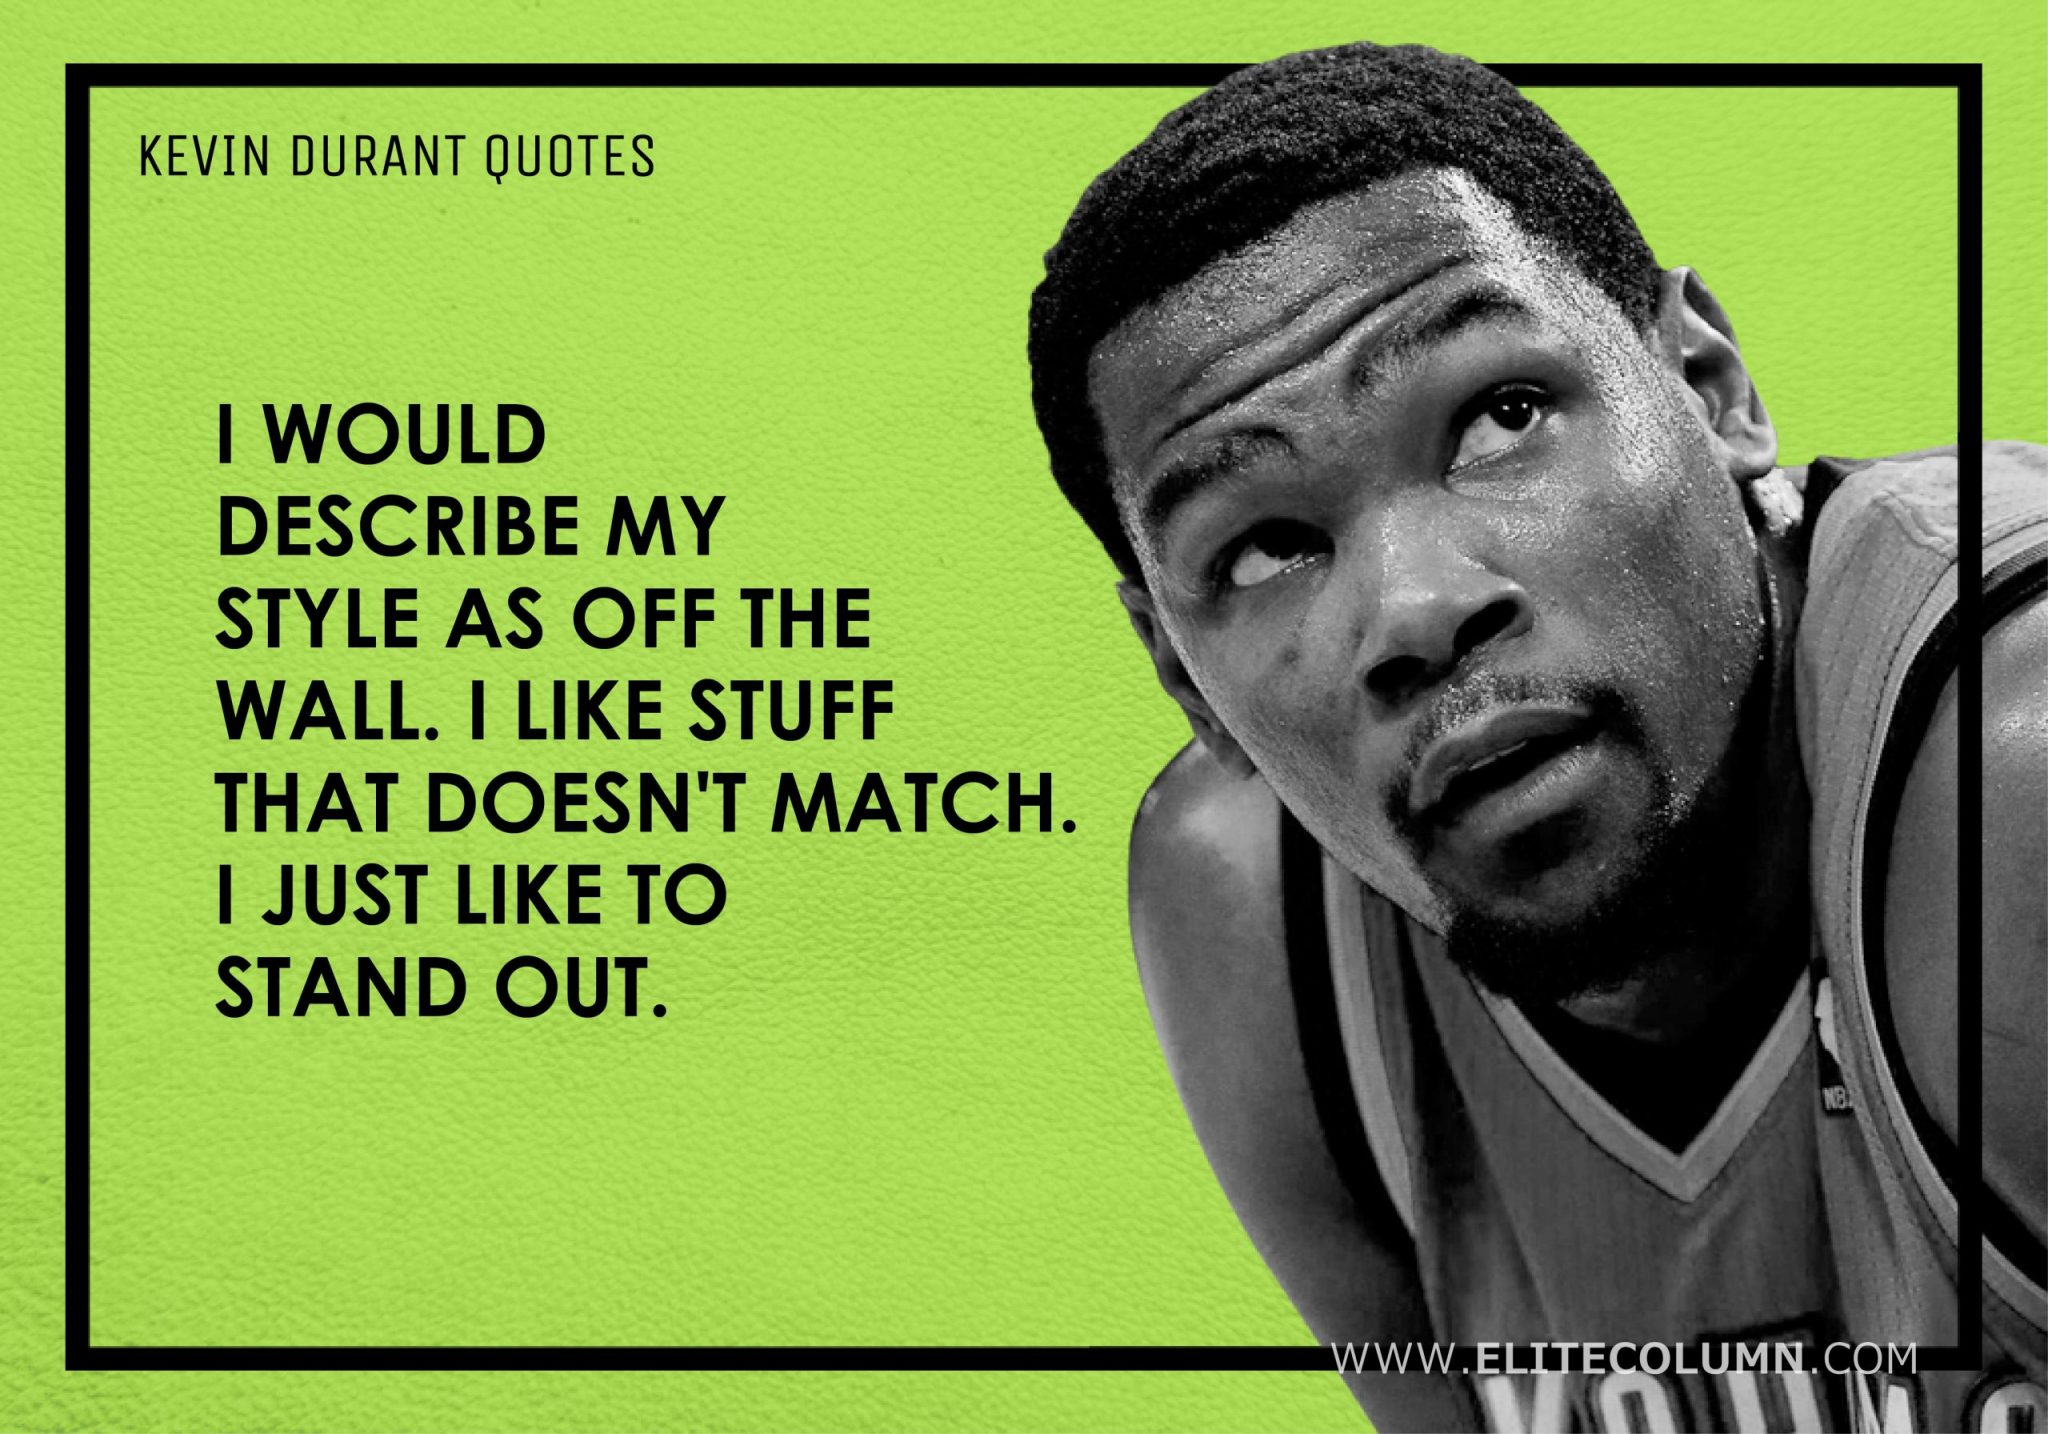 Kevin Durant Quotes (9)